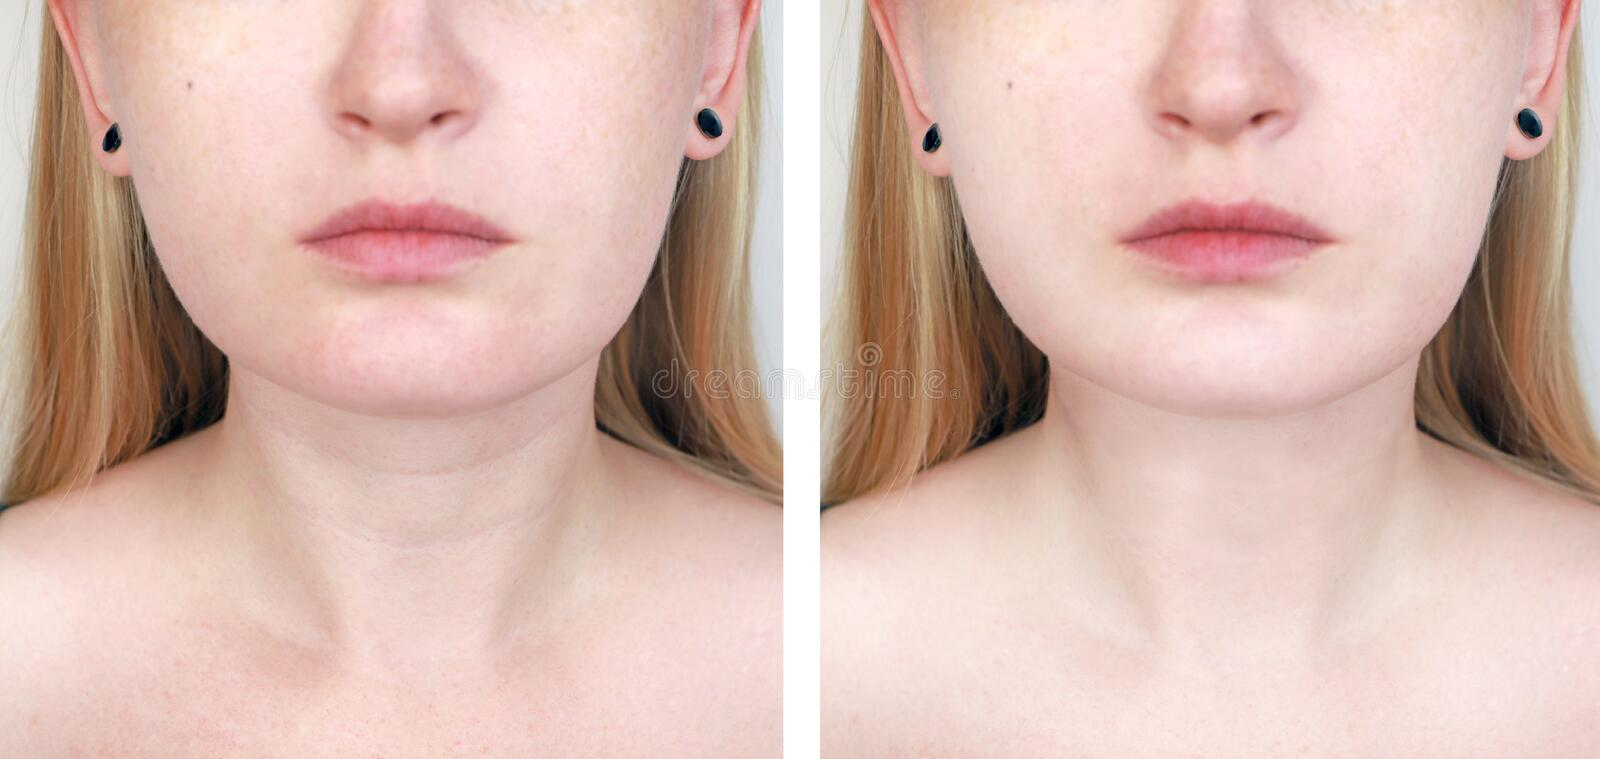 A cosmetologist prepares the patient for surgery: contour plastics of the neck, mesotherapy or botulinum therapy. Wrinkles and royalty free stock photos